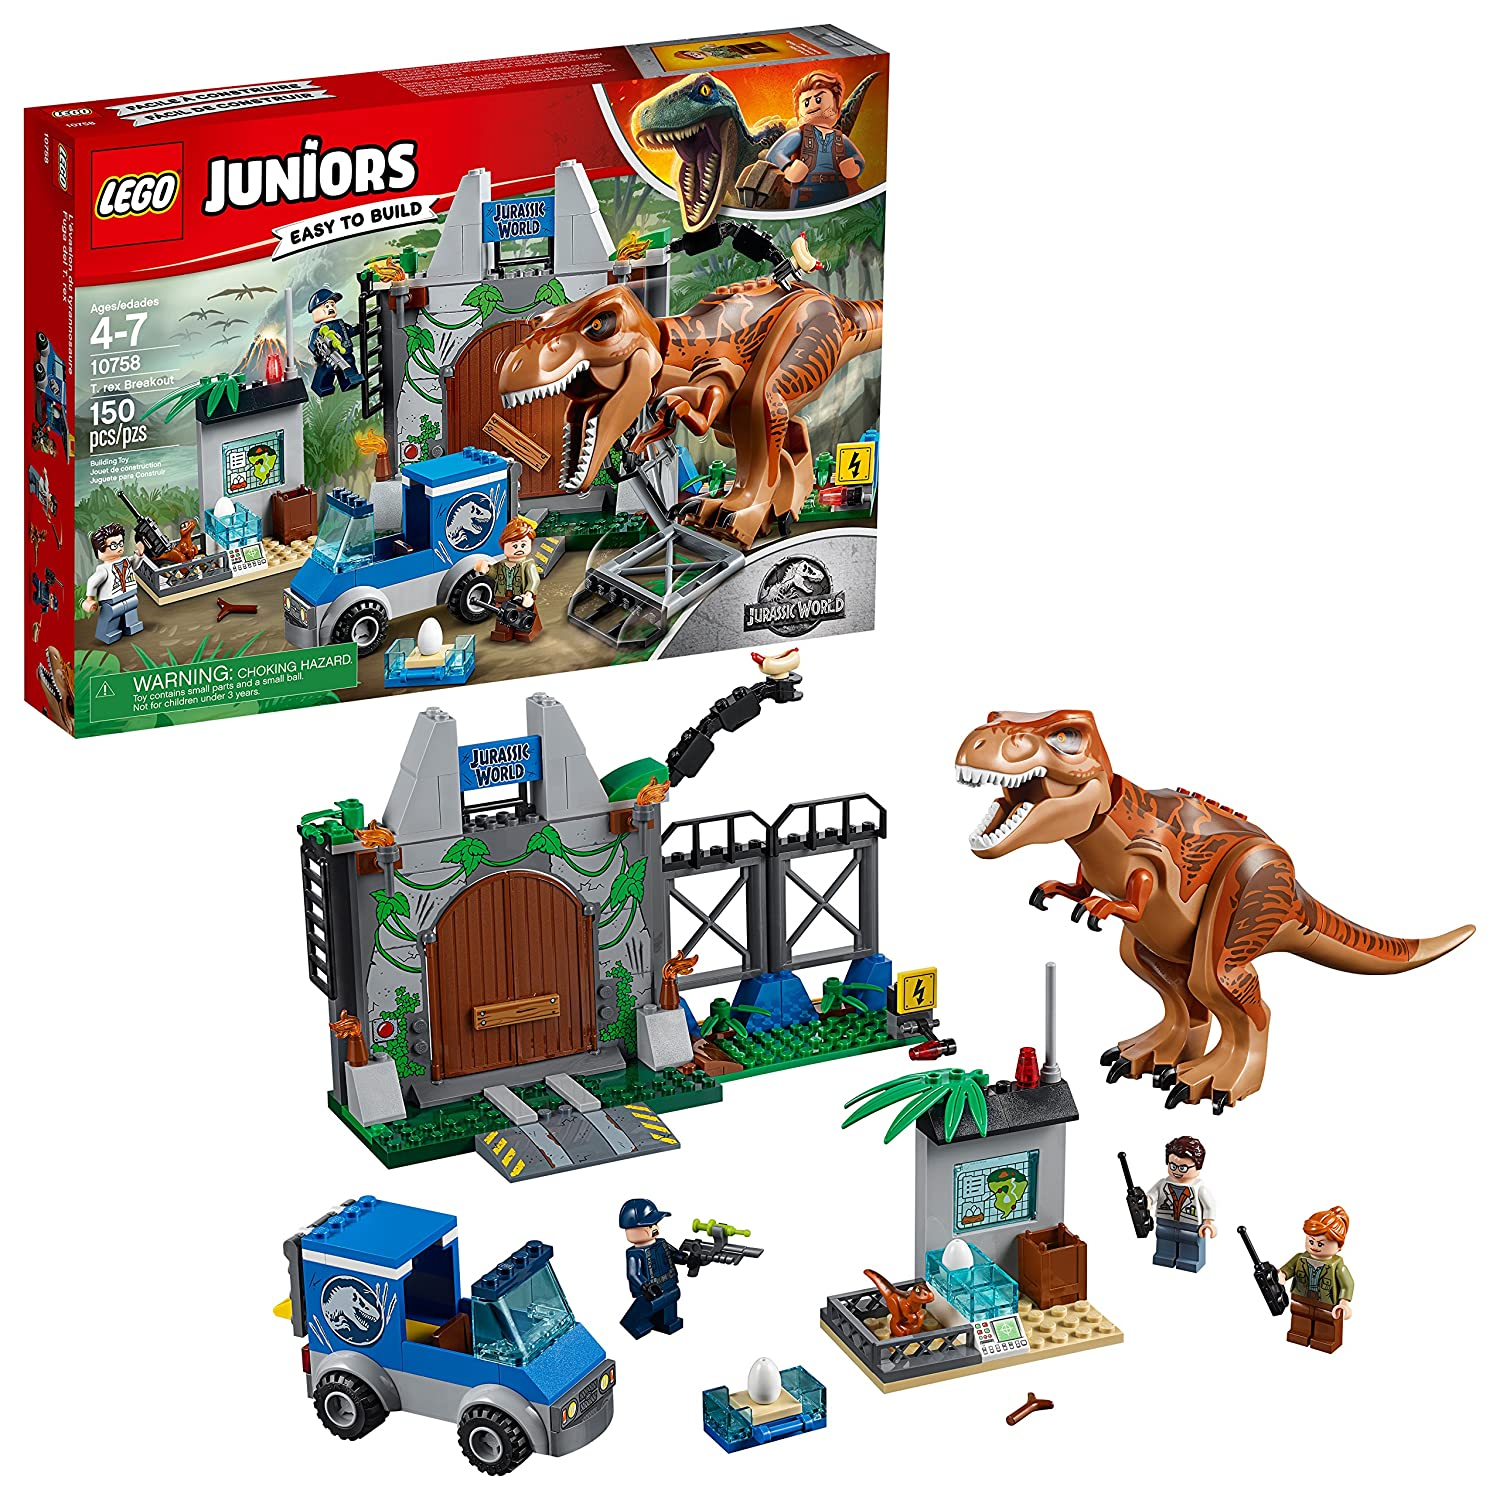 LEGO Juniors/4+ Jurassic World T. rex Breakout 10758 Building Kit (150 Piece)